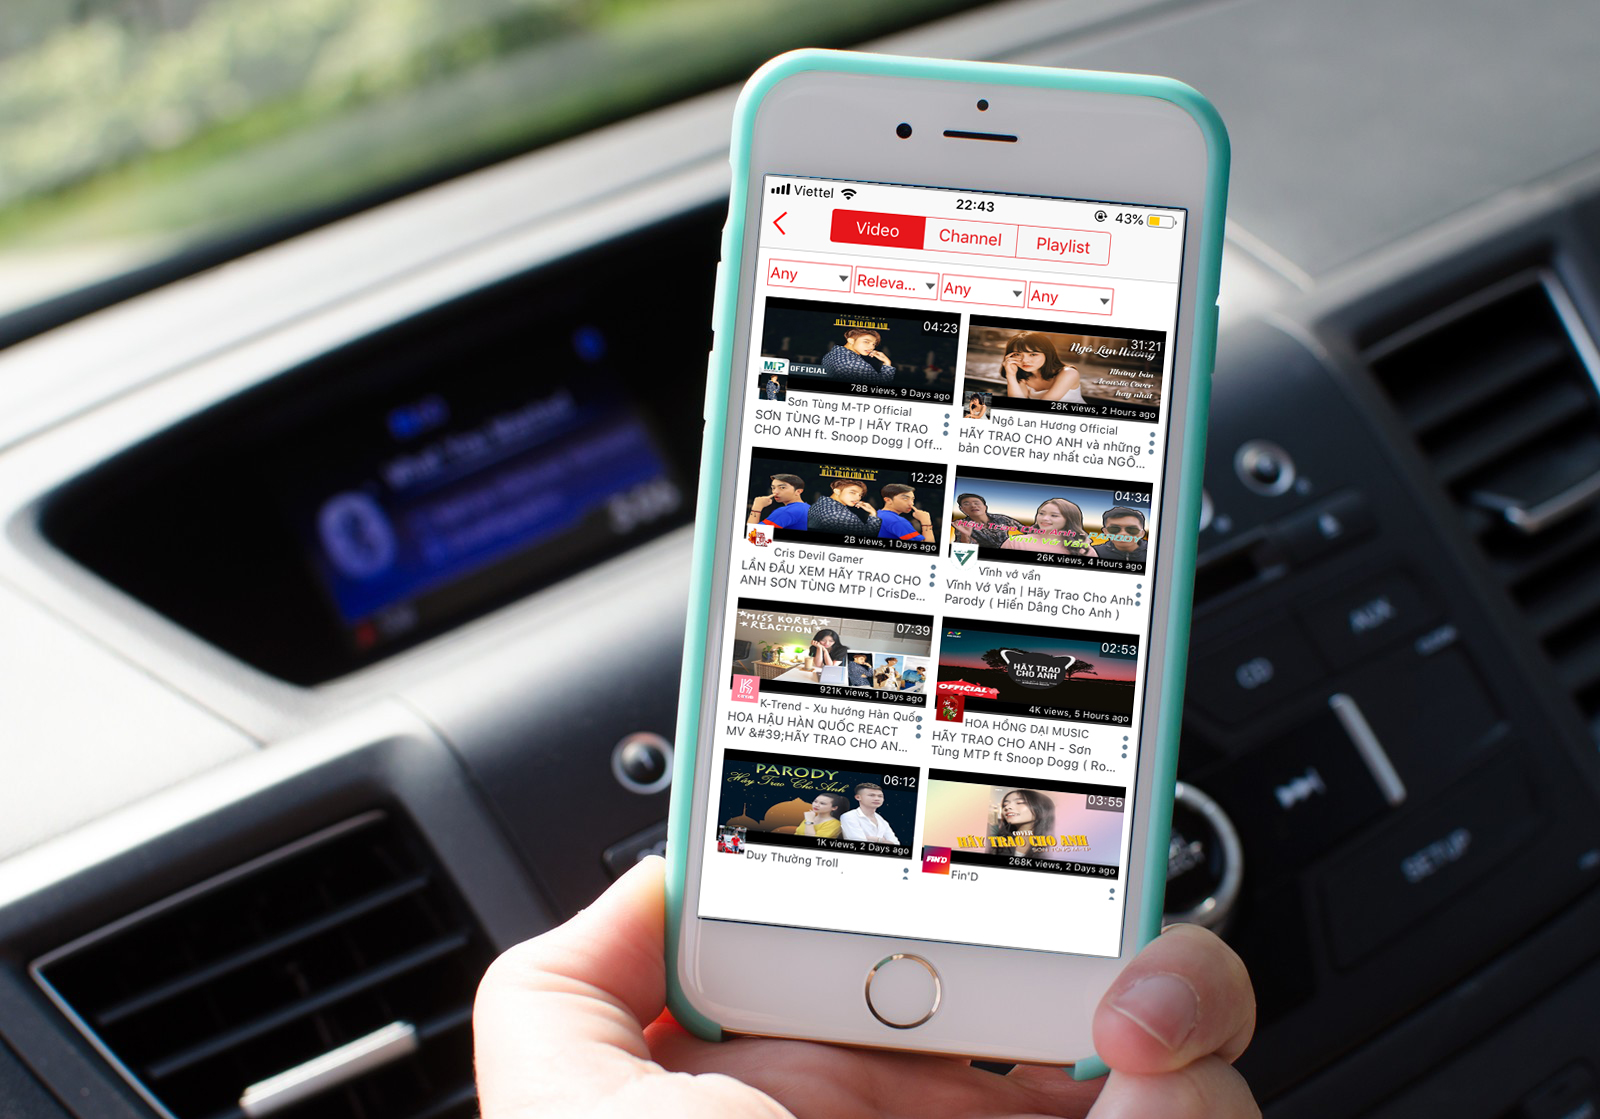 Sforum - The latest technology information page iphone-6-car-dash-music-hero Share 3 best apps to listen to YouTube music off the screen on iPhone